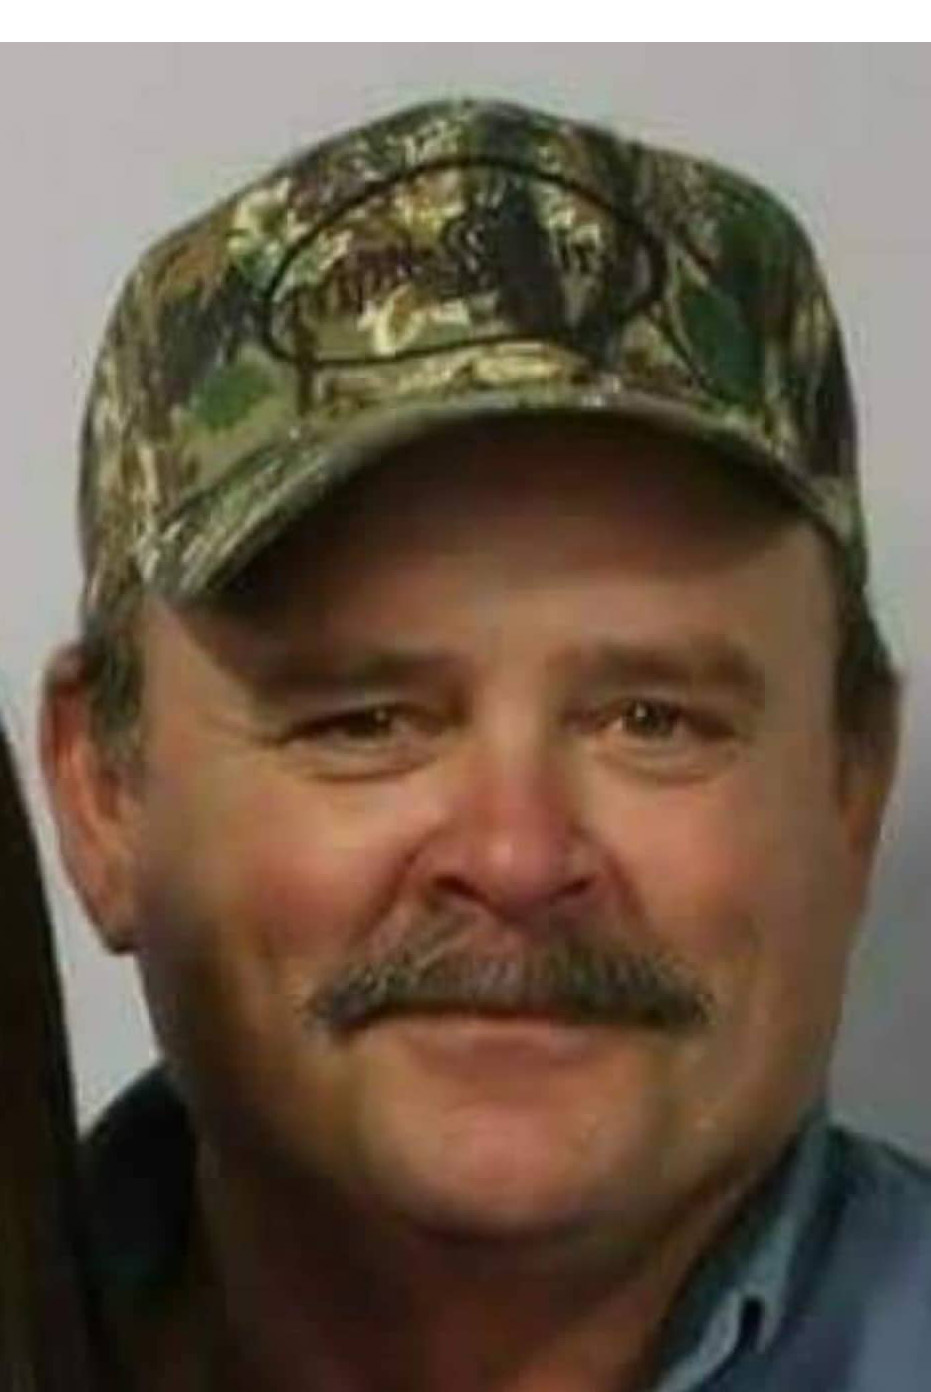 Ryan E. Marshall, age 59, of Dale